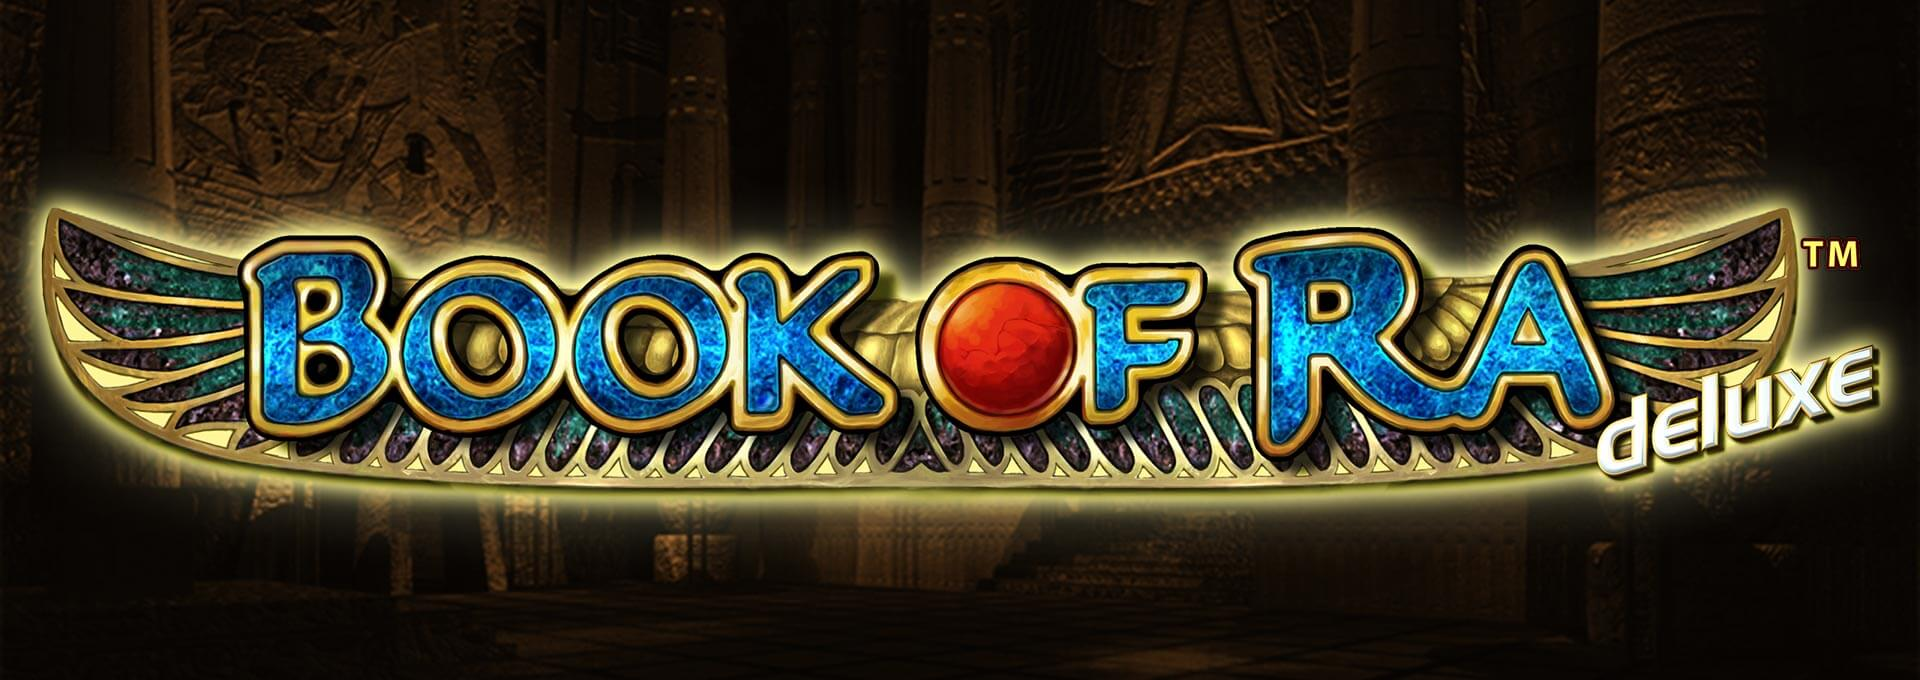 blackjack online casino bock of ra